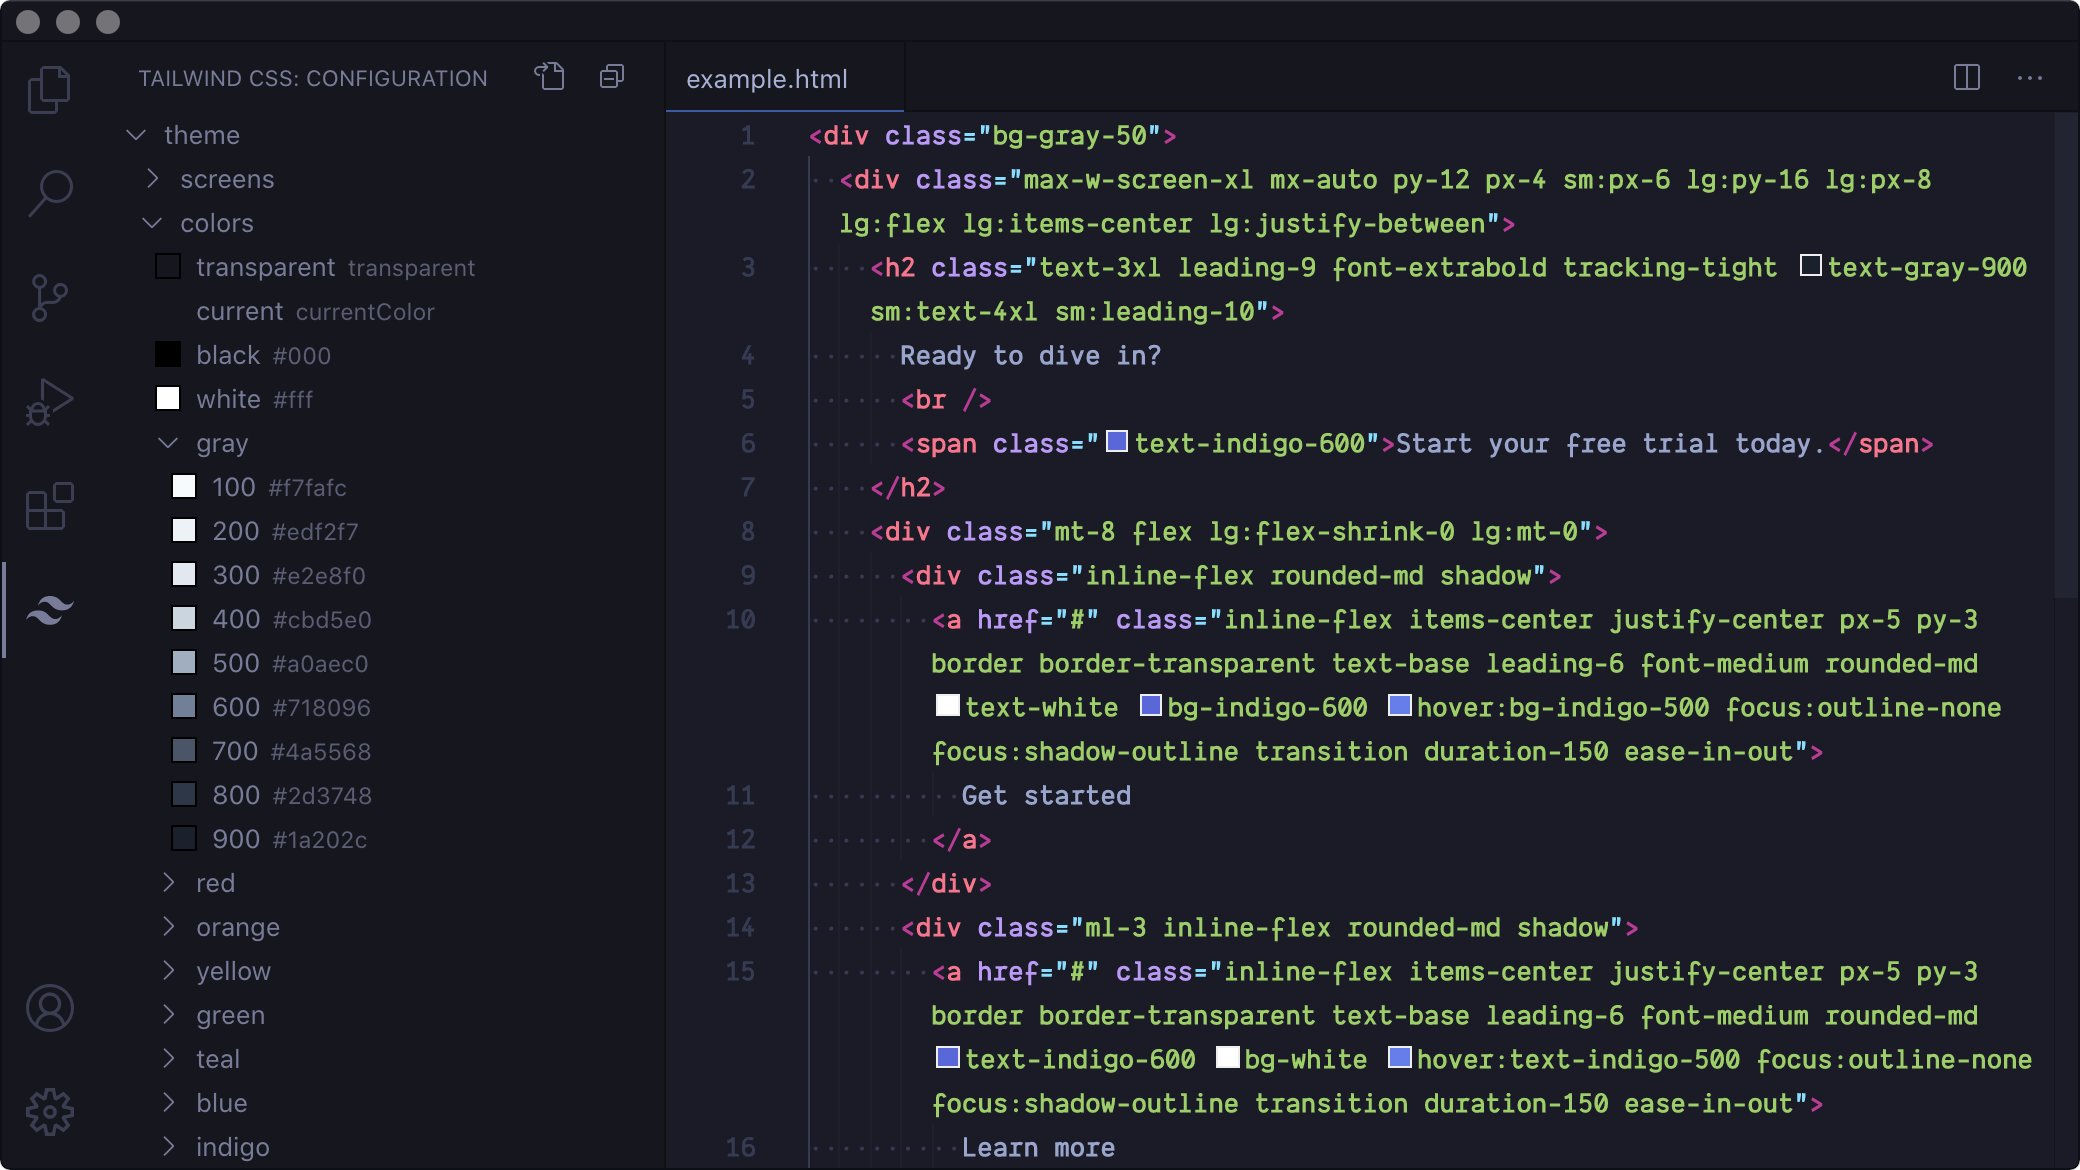 Screen capture showing a VS Code window. Tailwind CSS classes which apply colors have color blocks next to them. There is a panel on the left of the screen which displays your Tailwind config in a tree view.